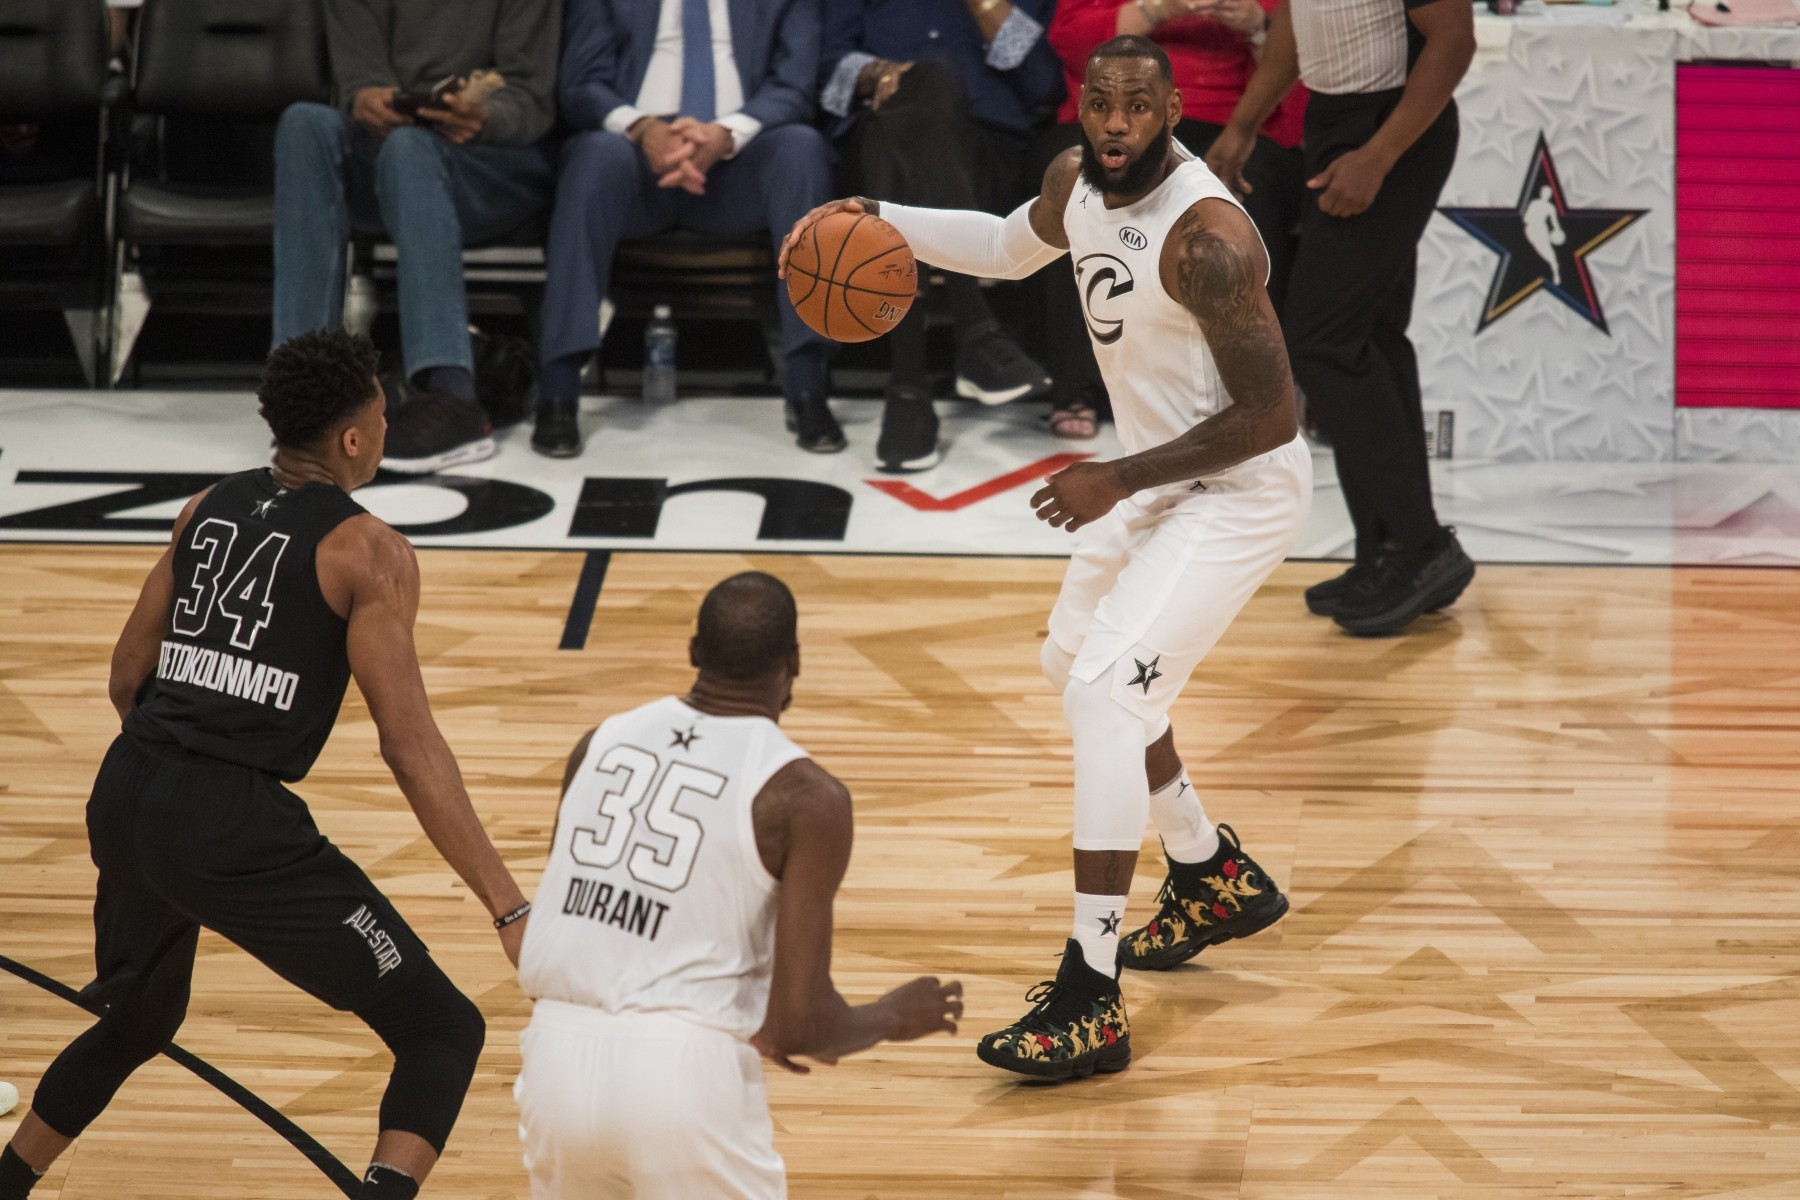 LeBron James #23 of Team Lebron looks to pass the ball to teammate Kevin Durant #35 during the 2018 NBA All-Star Game at the Staples Center in Los Angeles, California on February 18, 2018. (Philip Pacheco/Anadolu Agency/Getty Images)